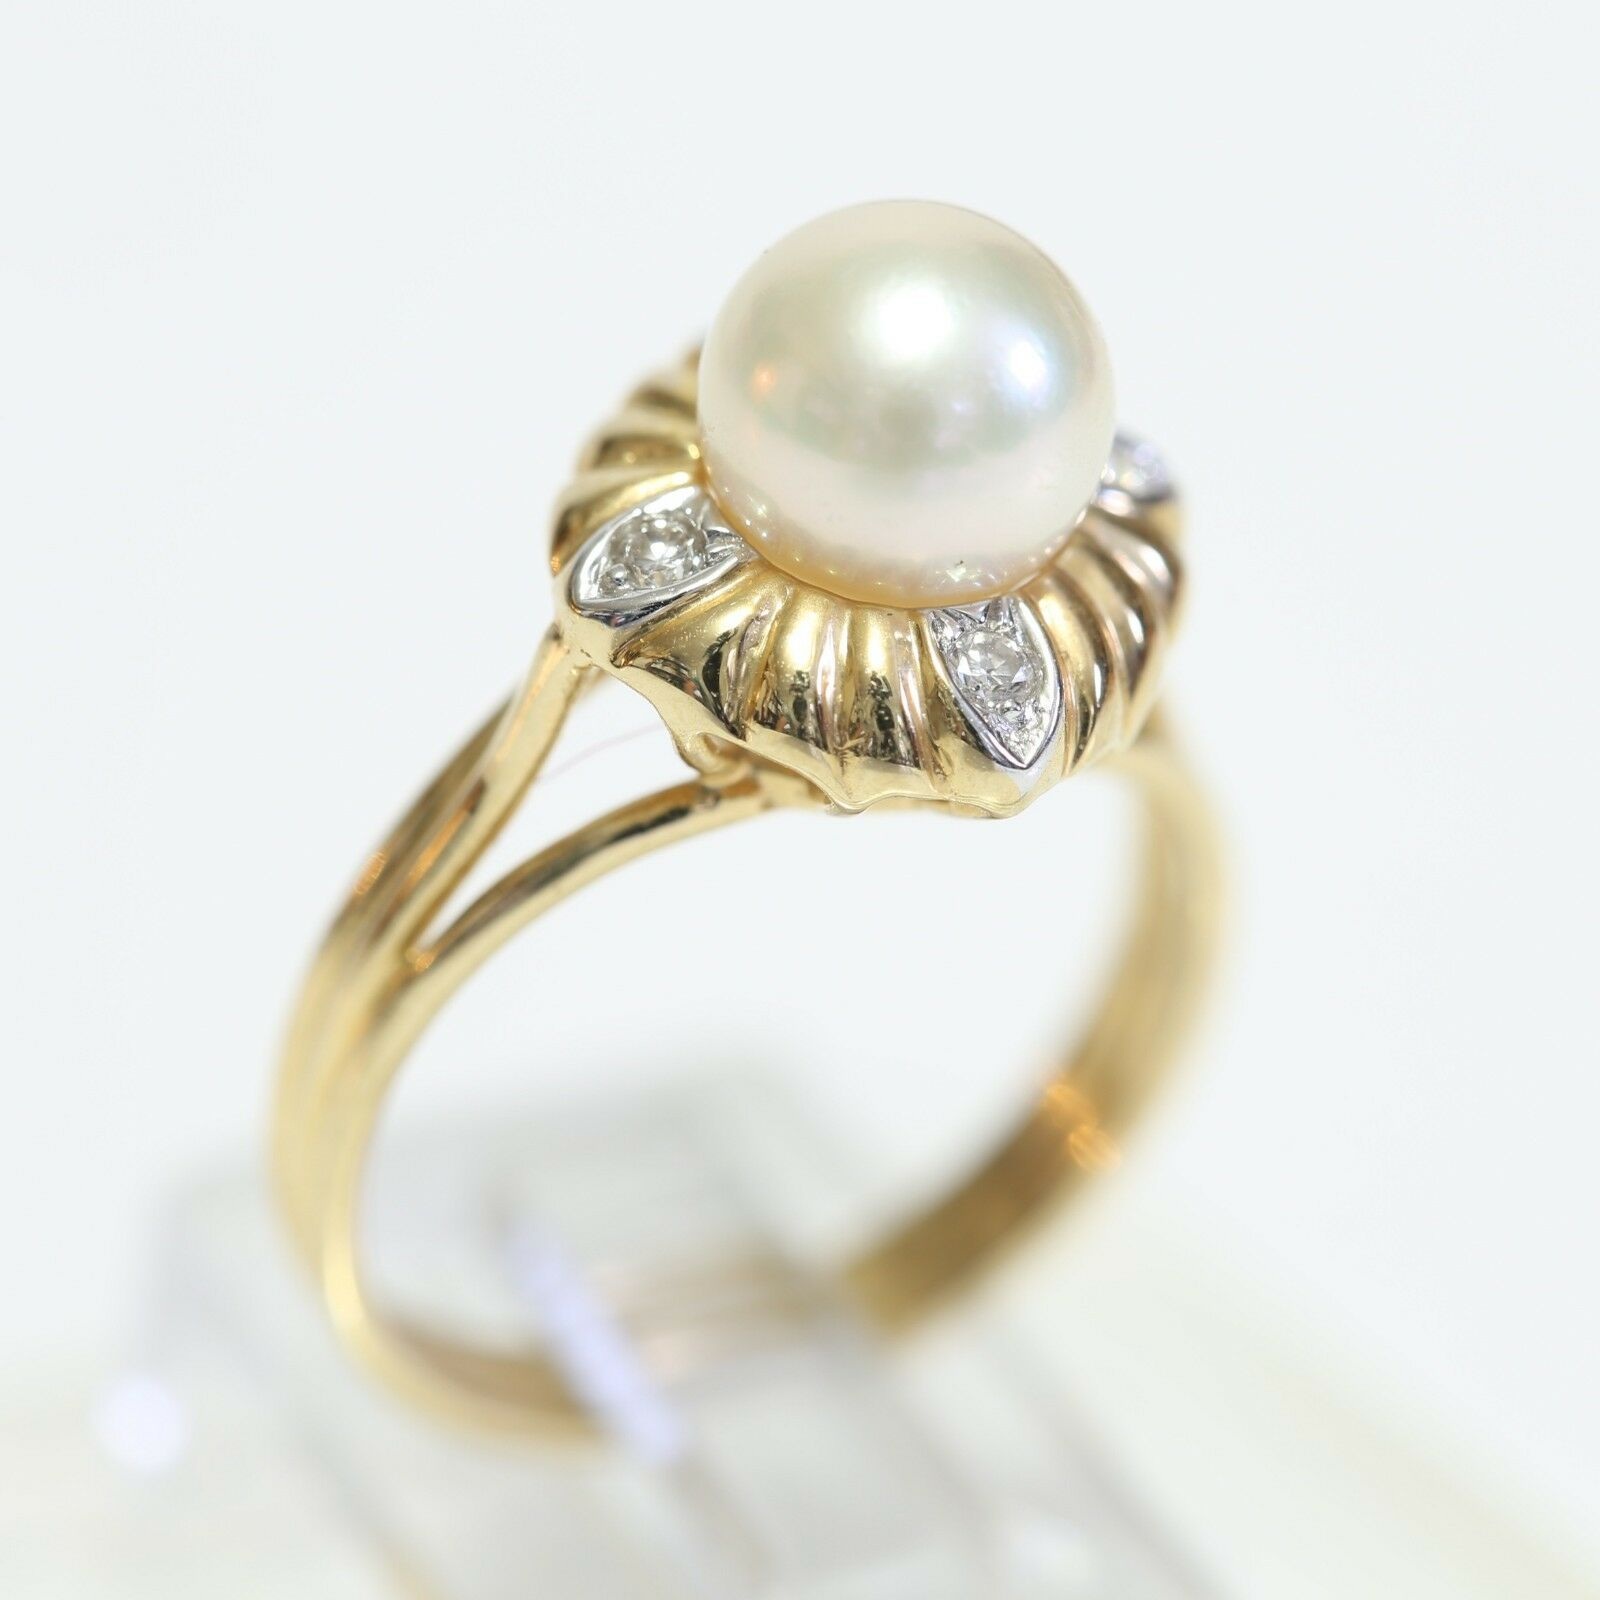 VINTAGE SOLID 18K gold & PEARL RING w DIAMOND ACCENTS, 3.9 grams, size 6.25, EXC